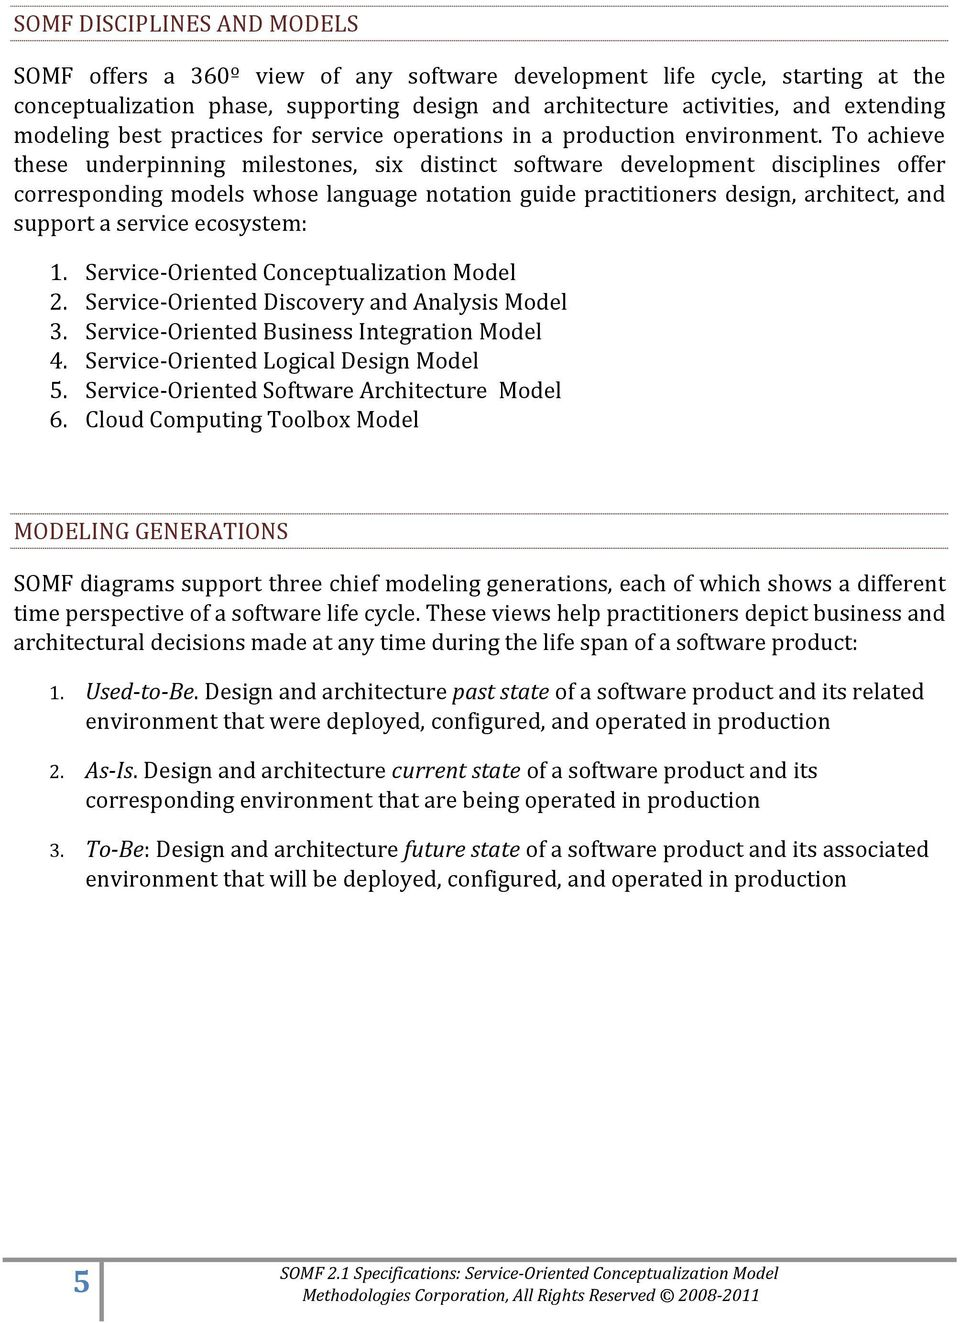 To achieve these underpinning milestones, six distinct software development disciplines offer corresponding models whose language notation guide practitioners design, architect, and support a service